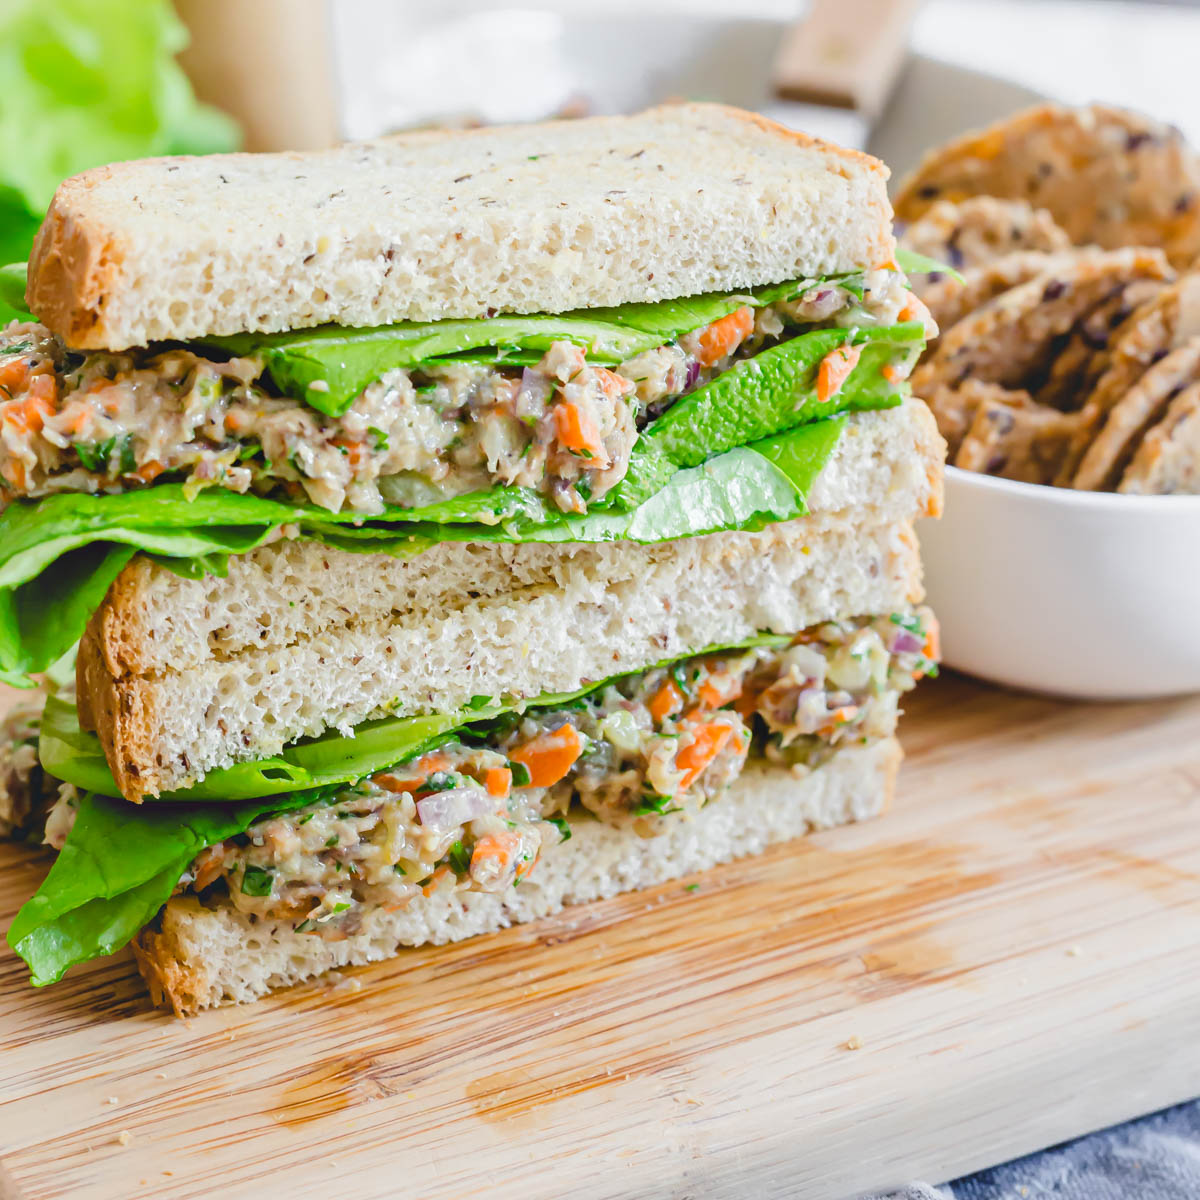 Sardine salad sandwich cut in half and stacked on top of each other on a cutting board.